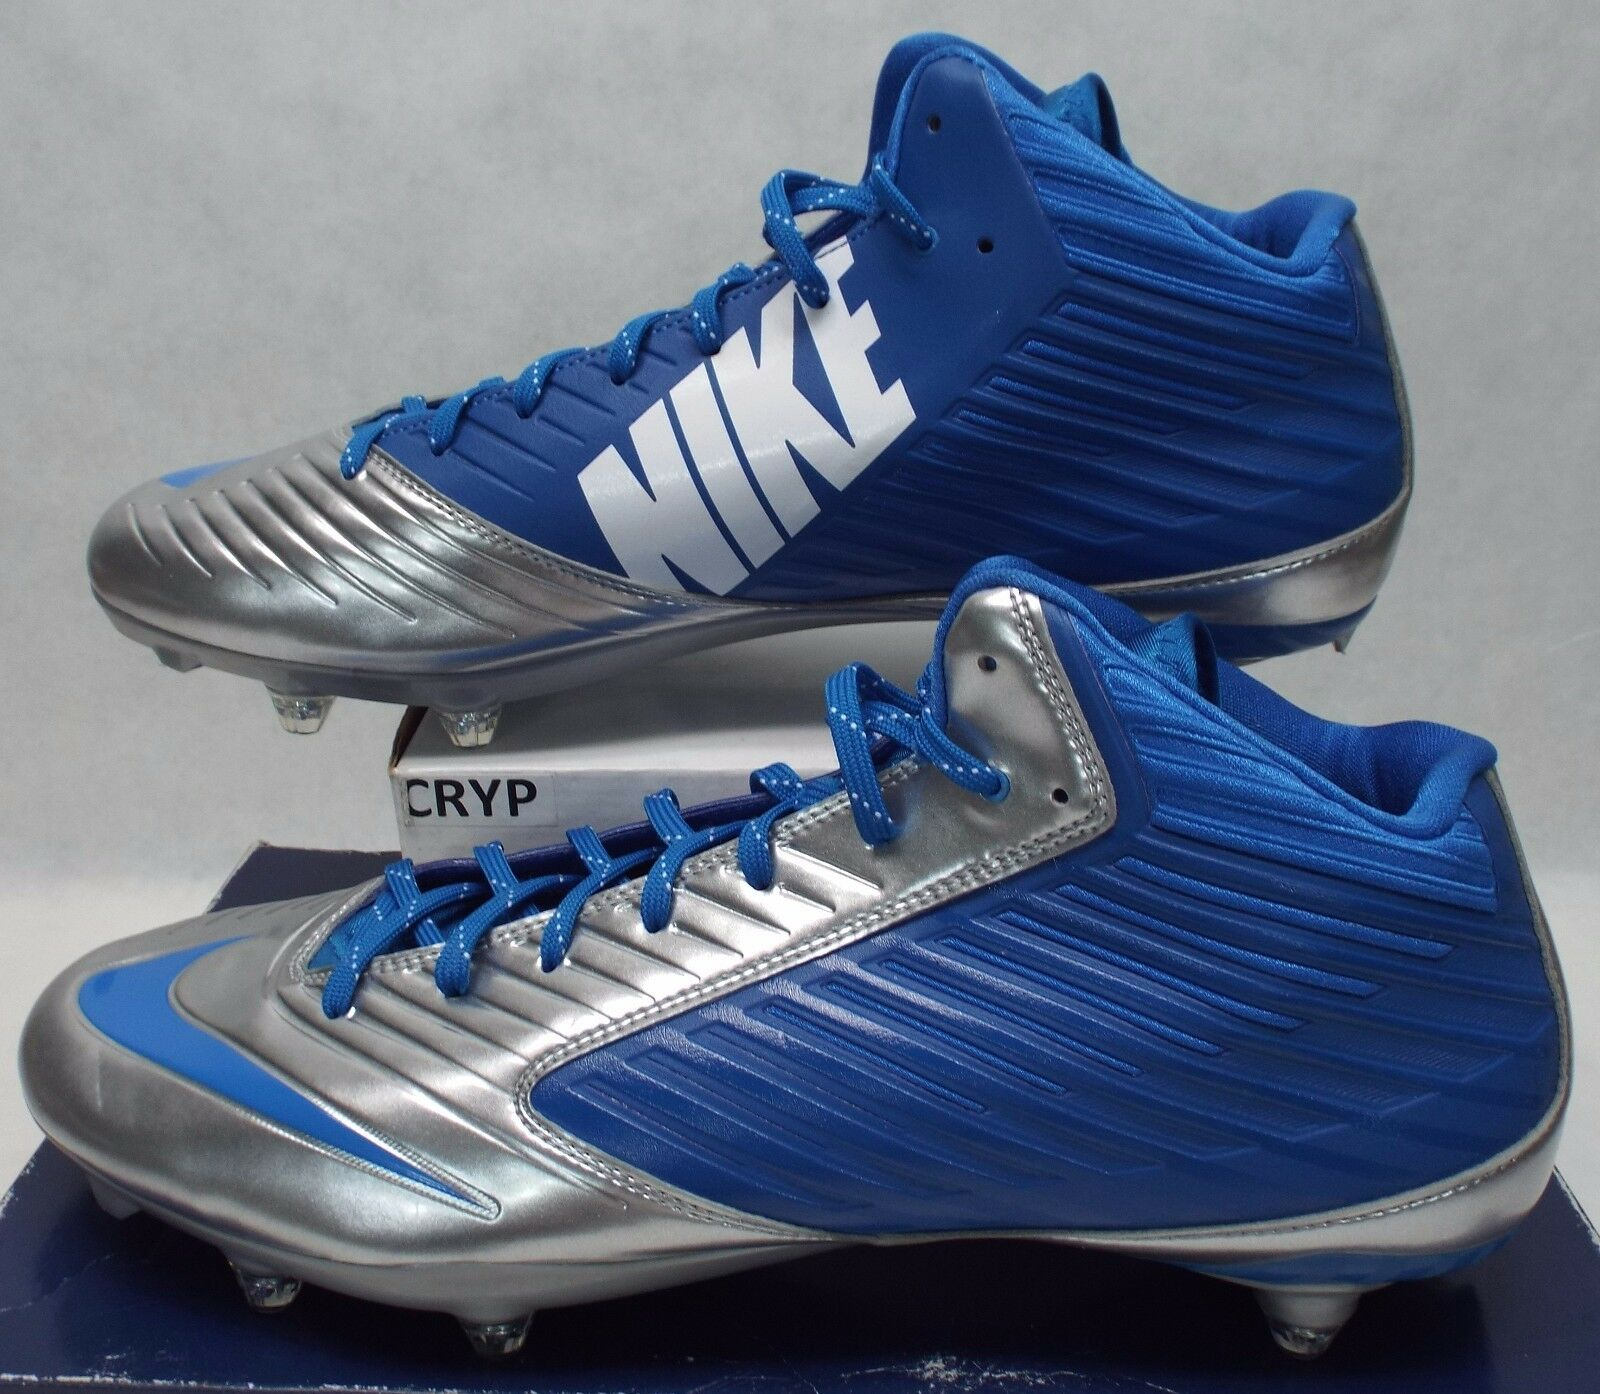 New hommes 15 NIKE Vapor Speed 3/4 TD Detroit Lions Cleats Chaussures 105 668853-411